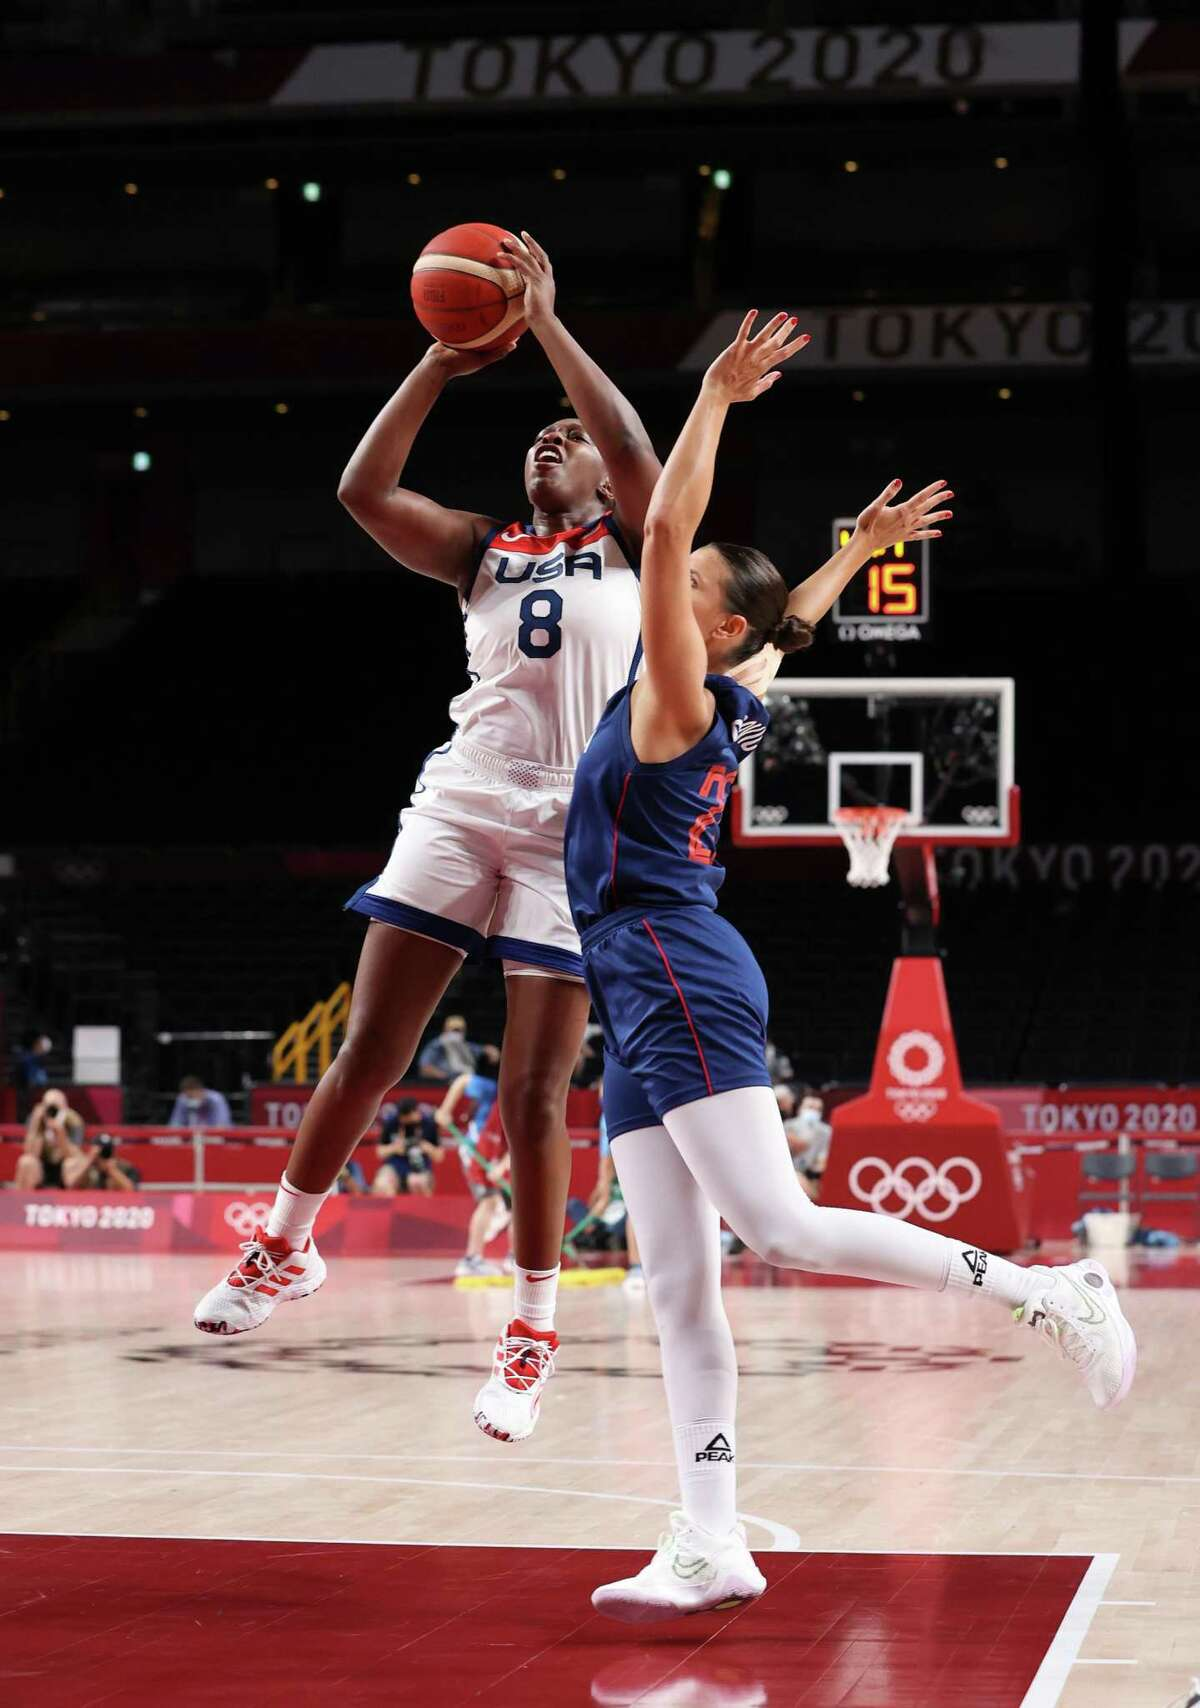 SAITAMA, JAPAN - AUGUST 06: Chelsea Gray #8 of Team United States shoots against Ana Dabovic #23 of Team Serbia during the first half of a Women's Basketball Semifinals game on day fourteen of the Tokyo 2020 Olympic Games at Saitama Super Arena on August 06, 2021 in Saitama, Japan. (Photo by Gregory Shamus/Getty Images)